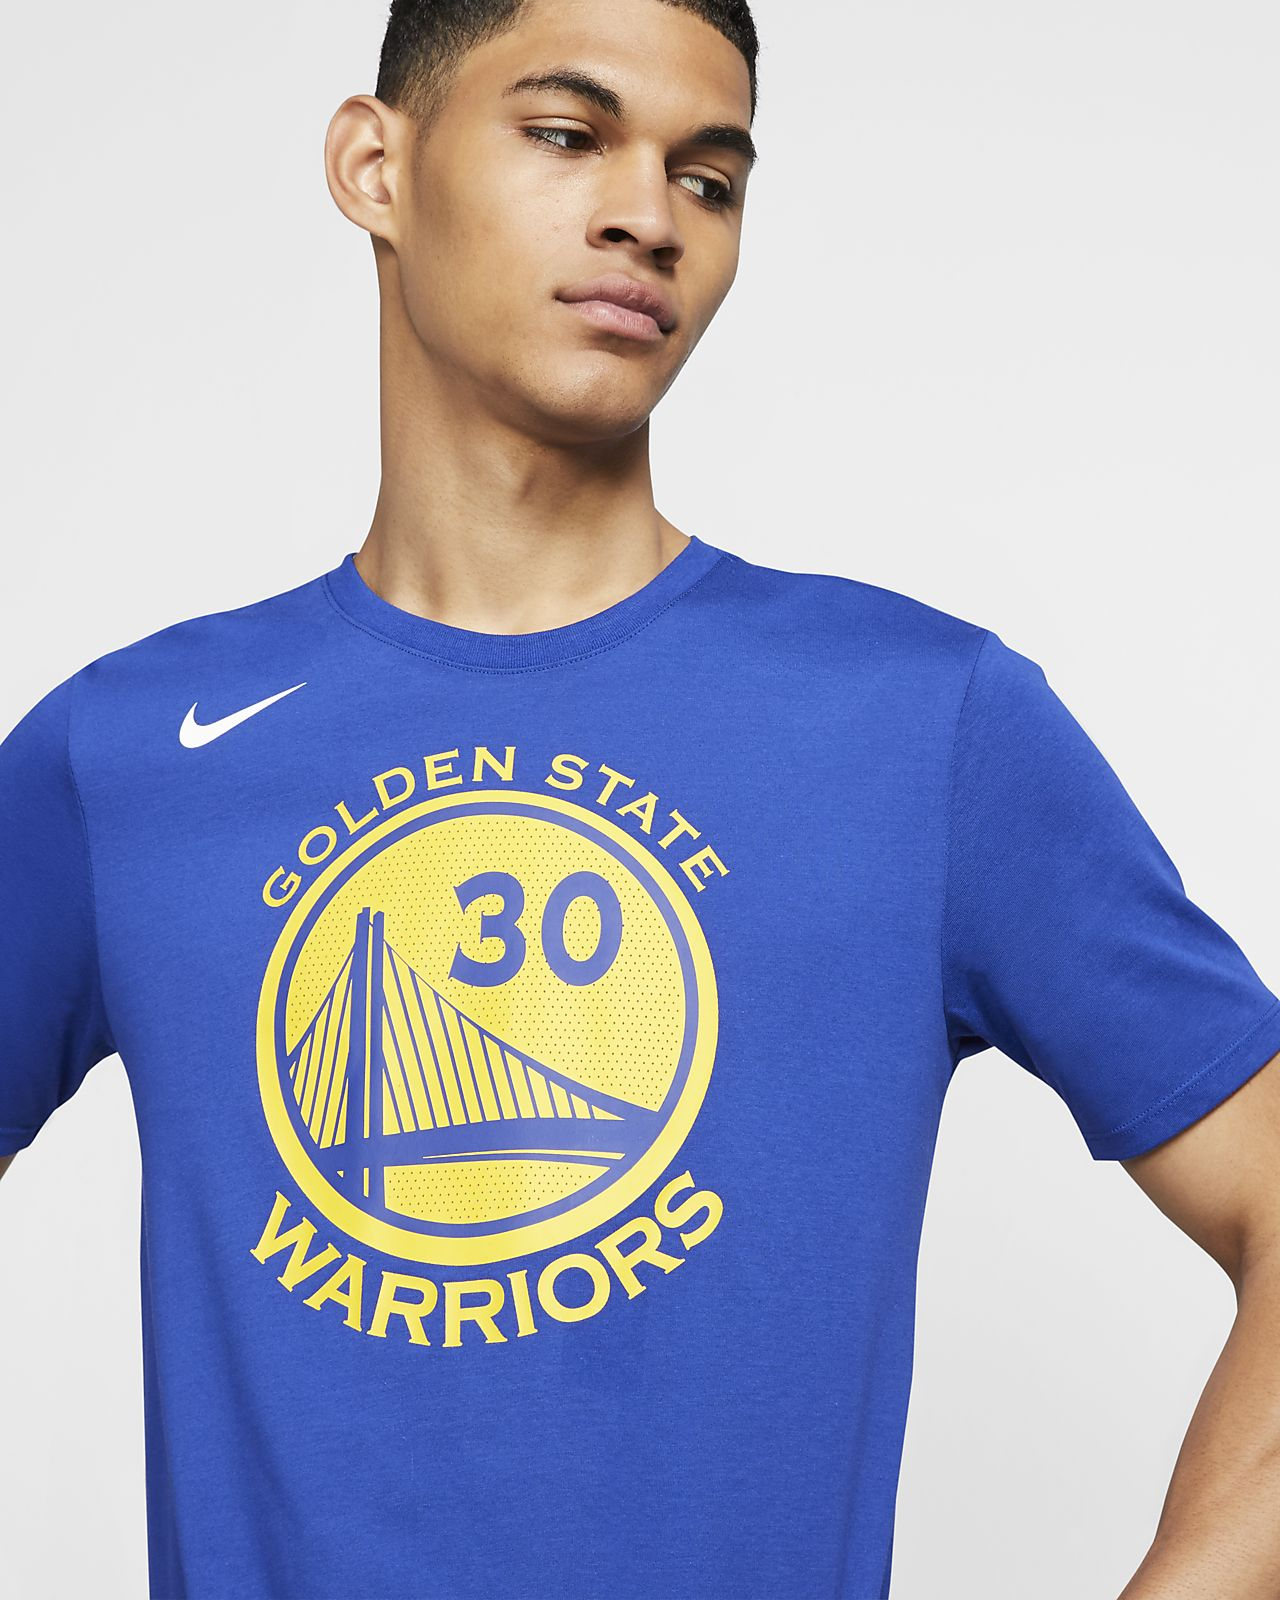 a2f762ae150 ... Stephen Curry Golden State Warriors Nike Dri-FIT Men's NBA T-Shirt